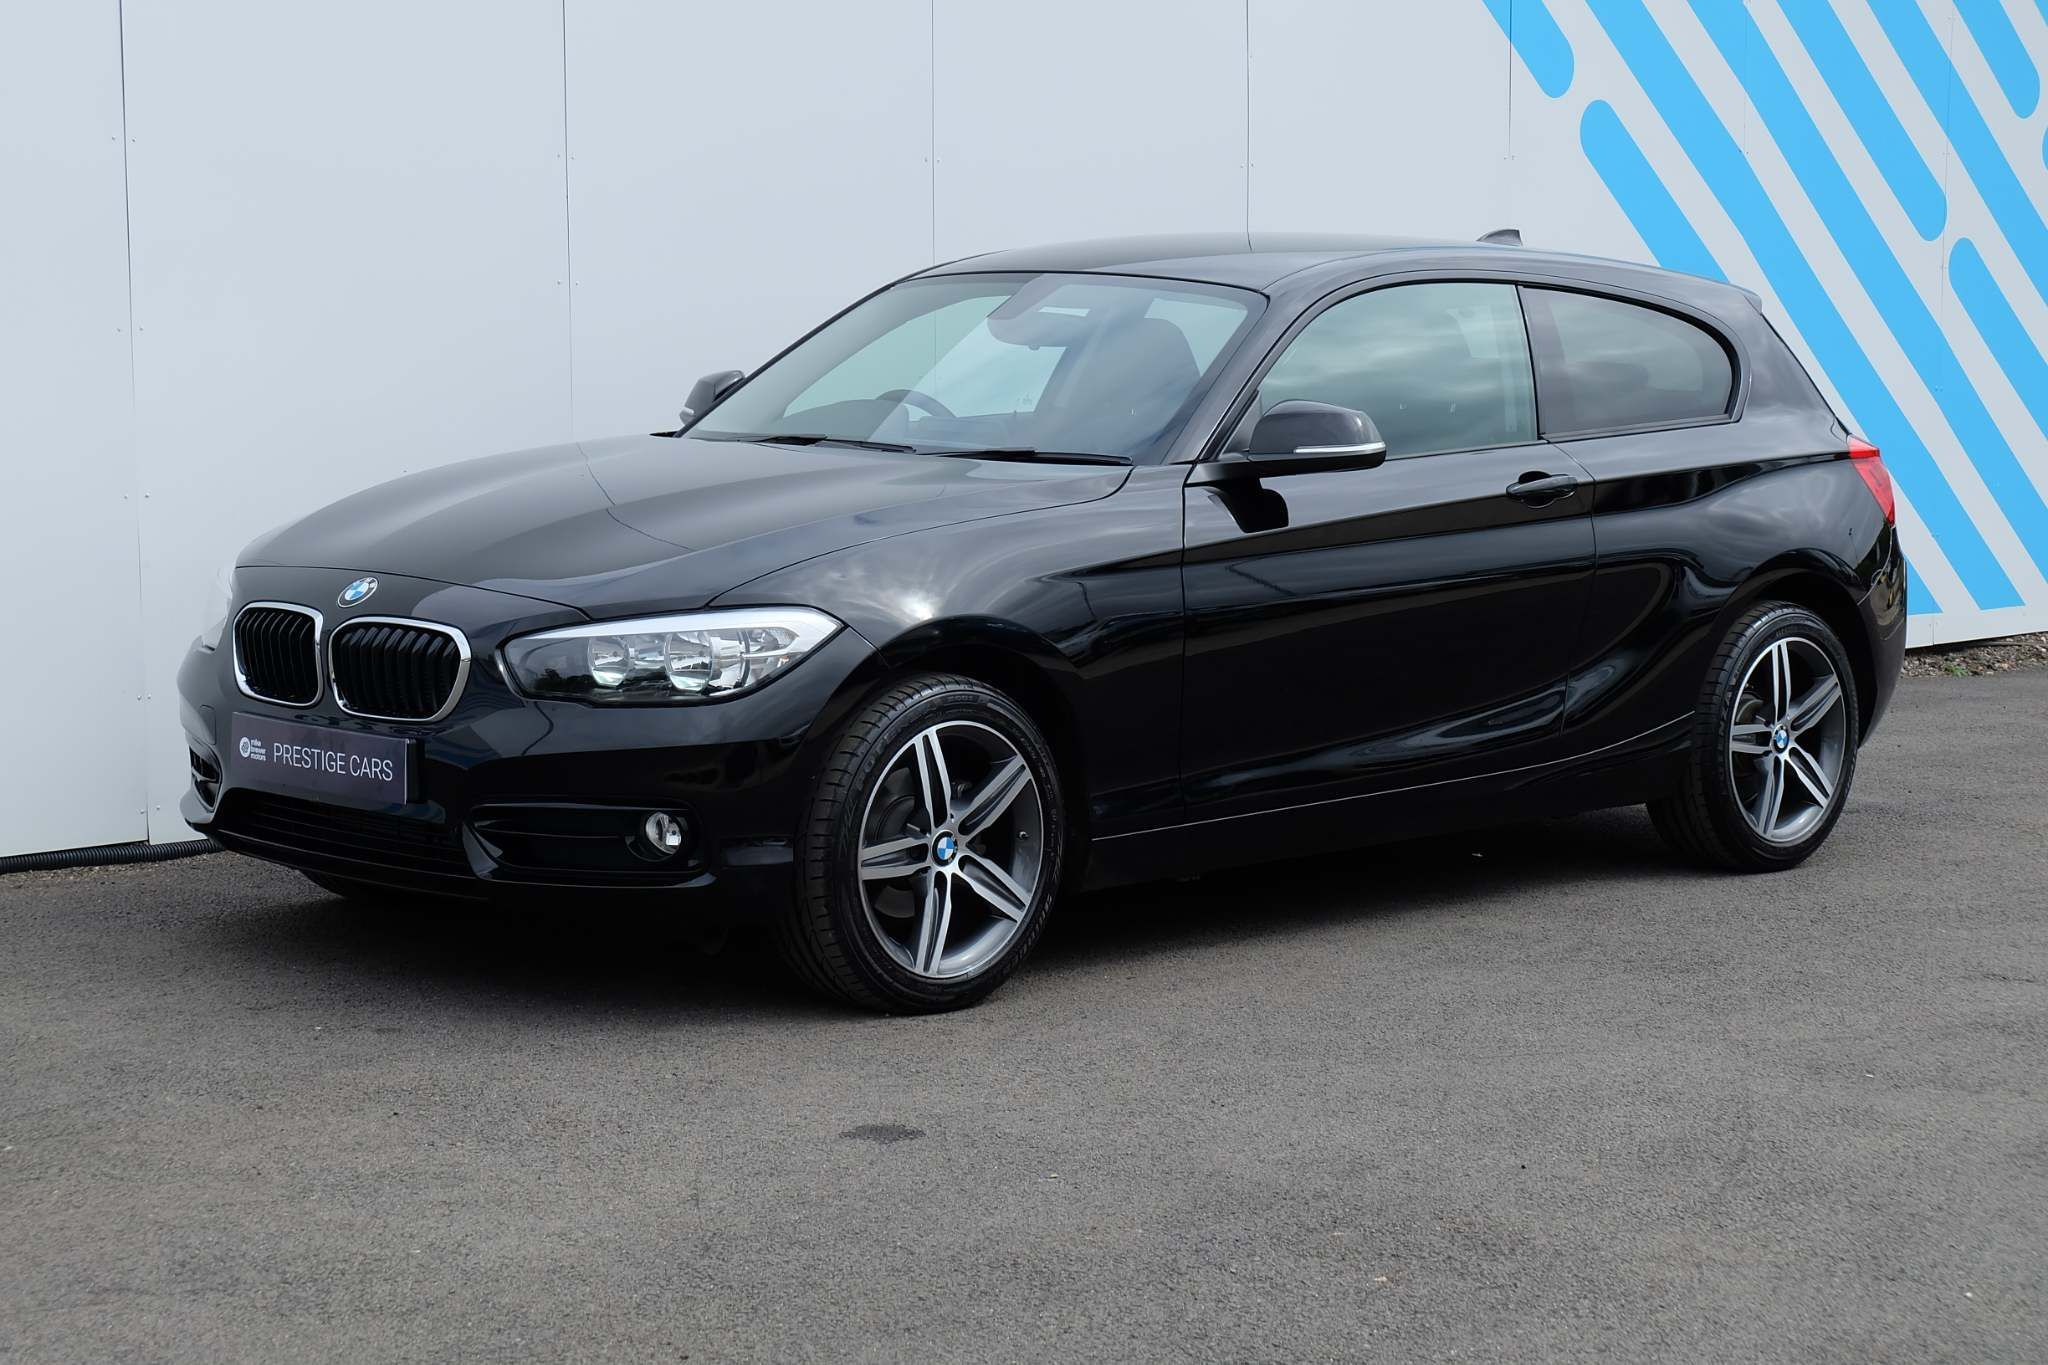 Used BMW 1 Series 1.5 118i Sport Sports Hatch Auto (s/s) 3dr